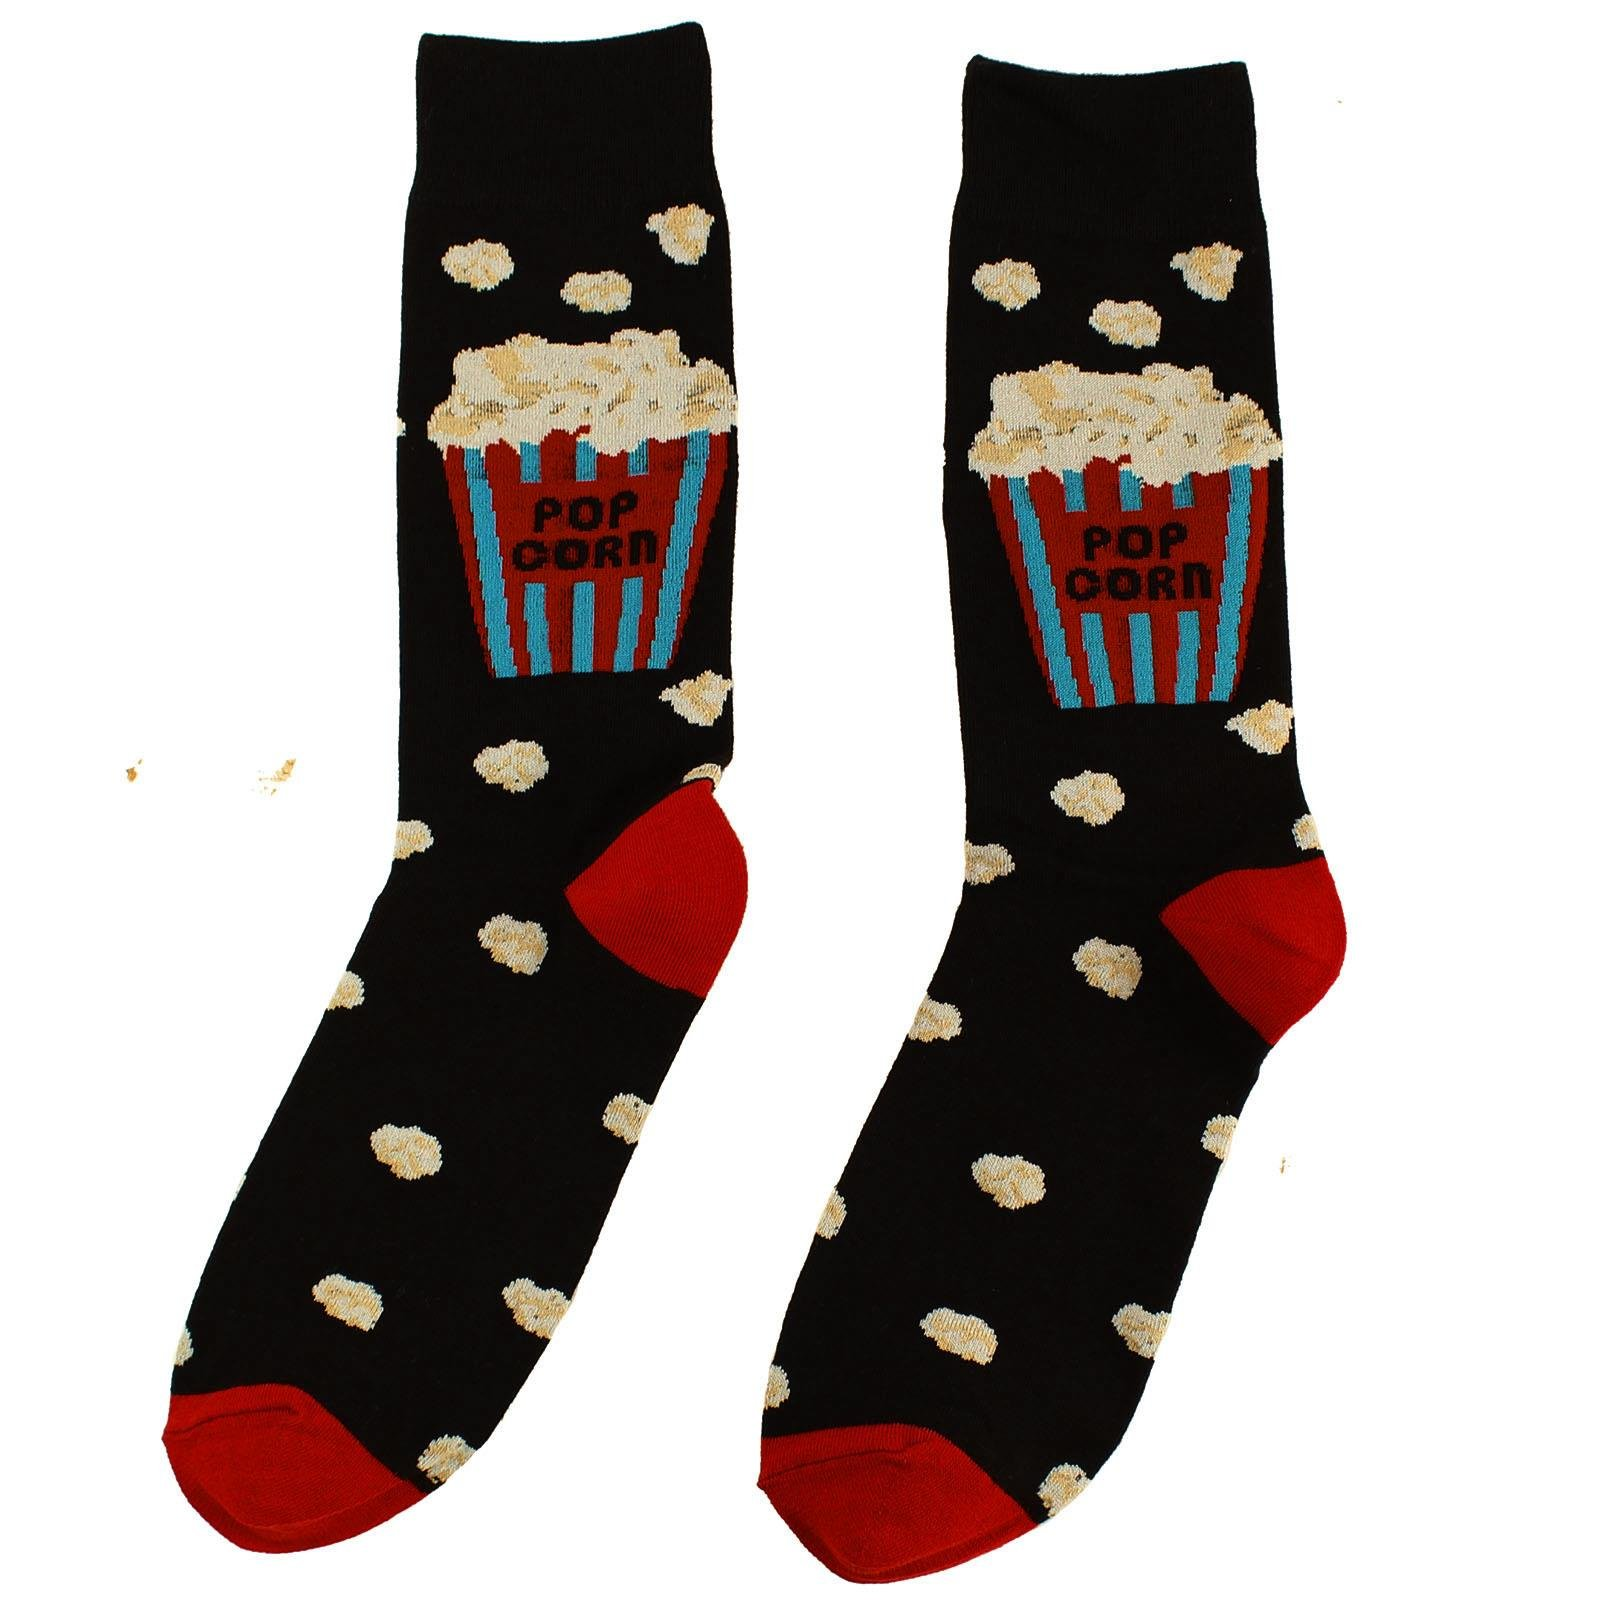 Men's Everday Novelty Fast Foods Comfort Foods Trouser Dressy Casual Comfy Socks Movie Popcorn by SK Hat shop (Image #2)